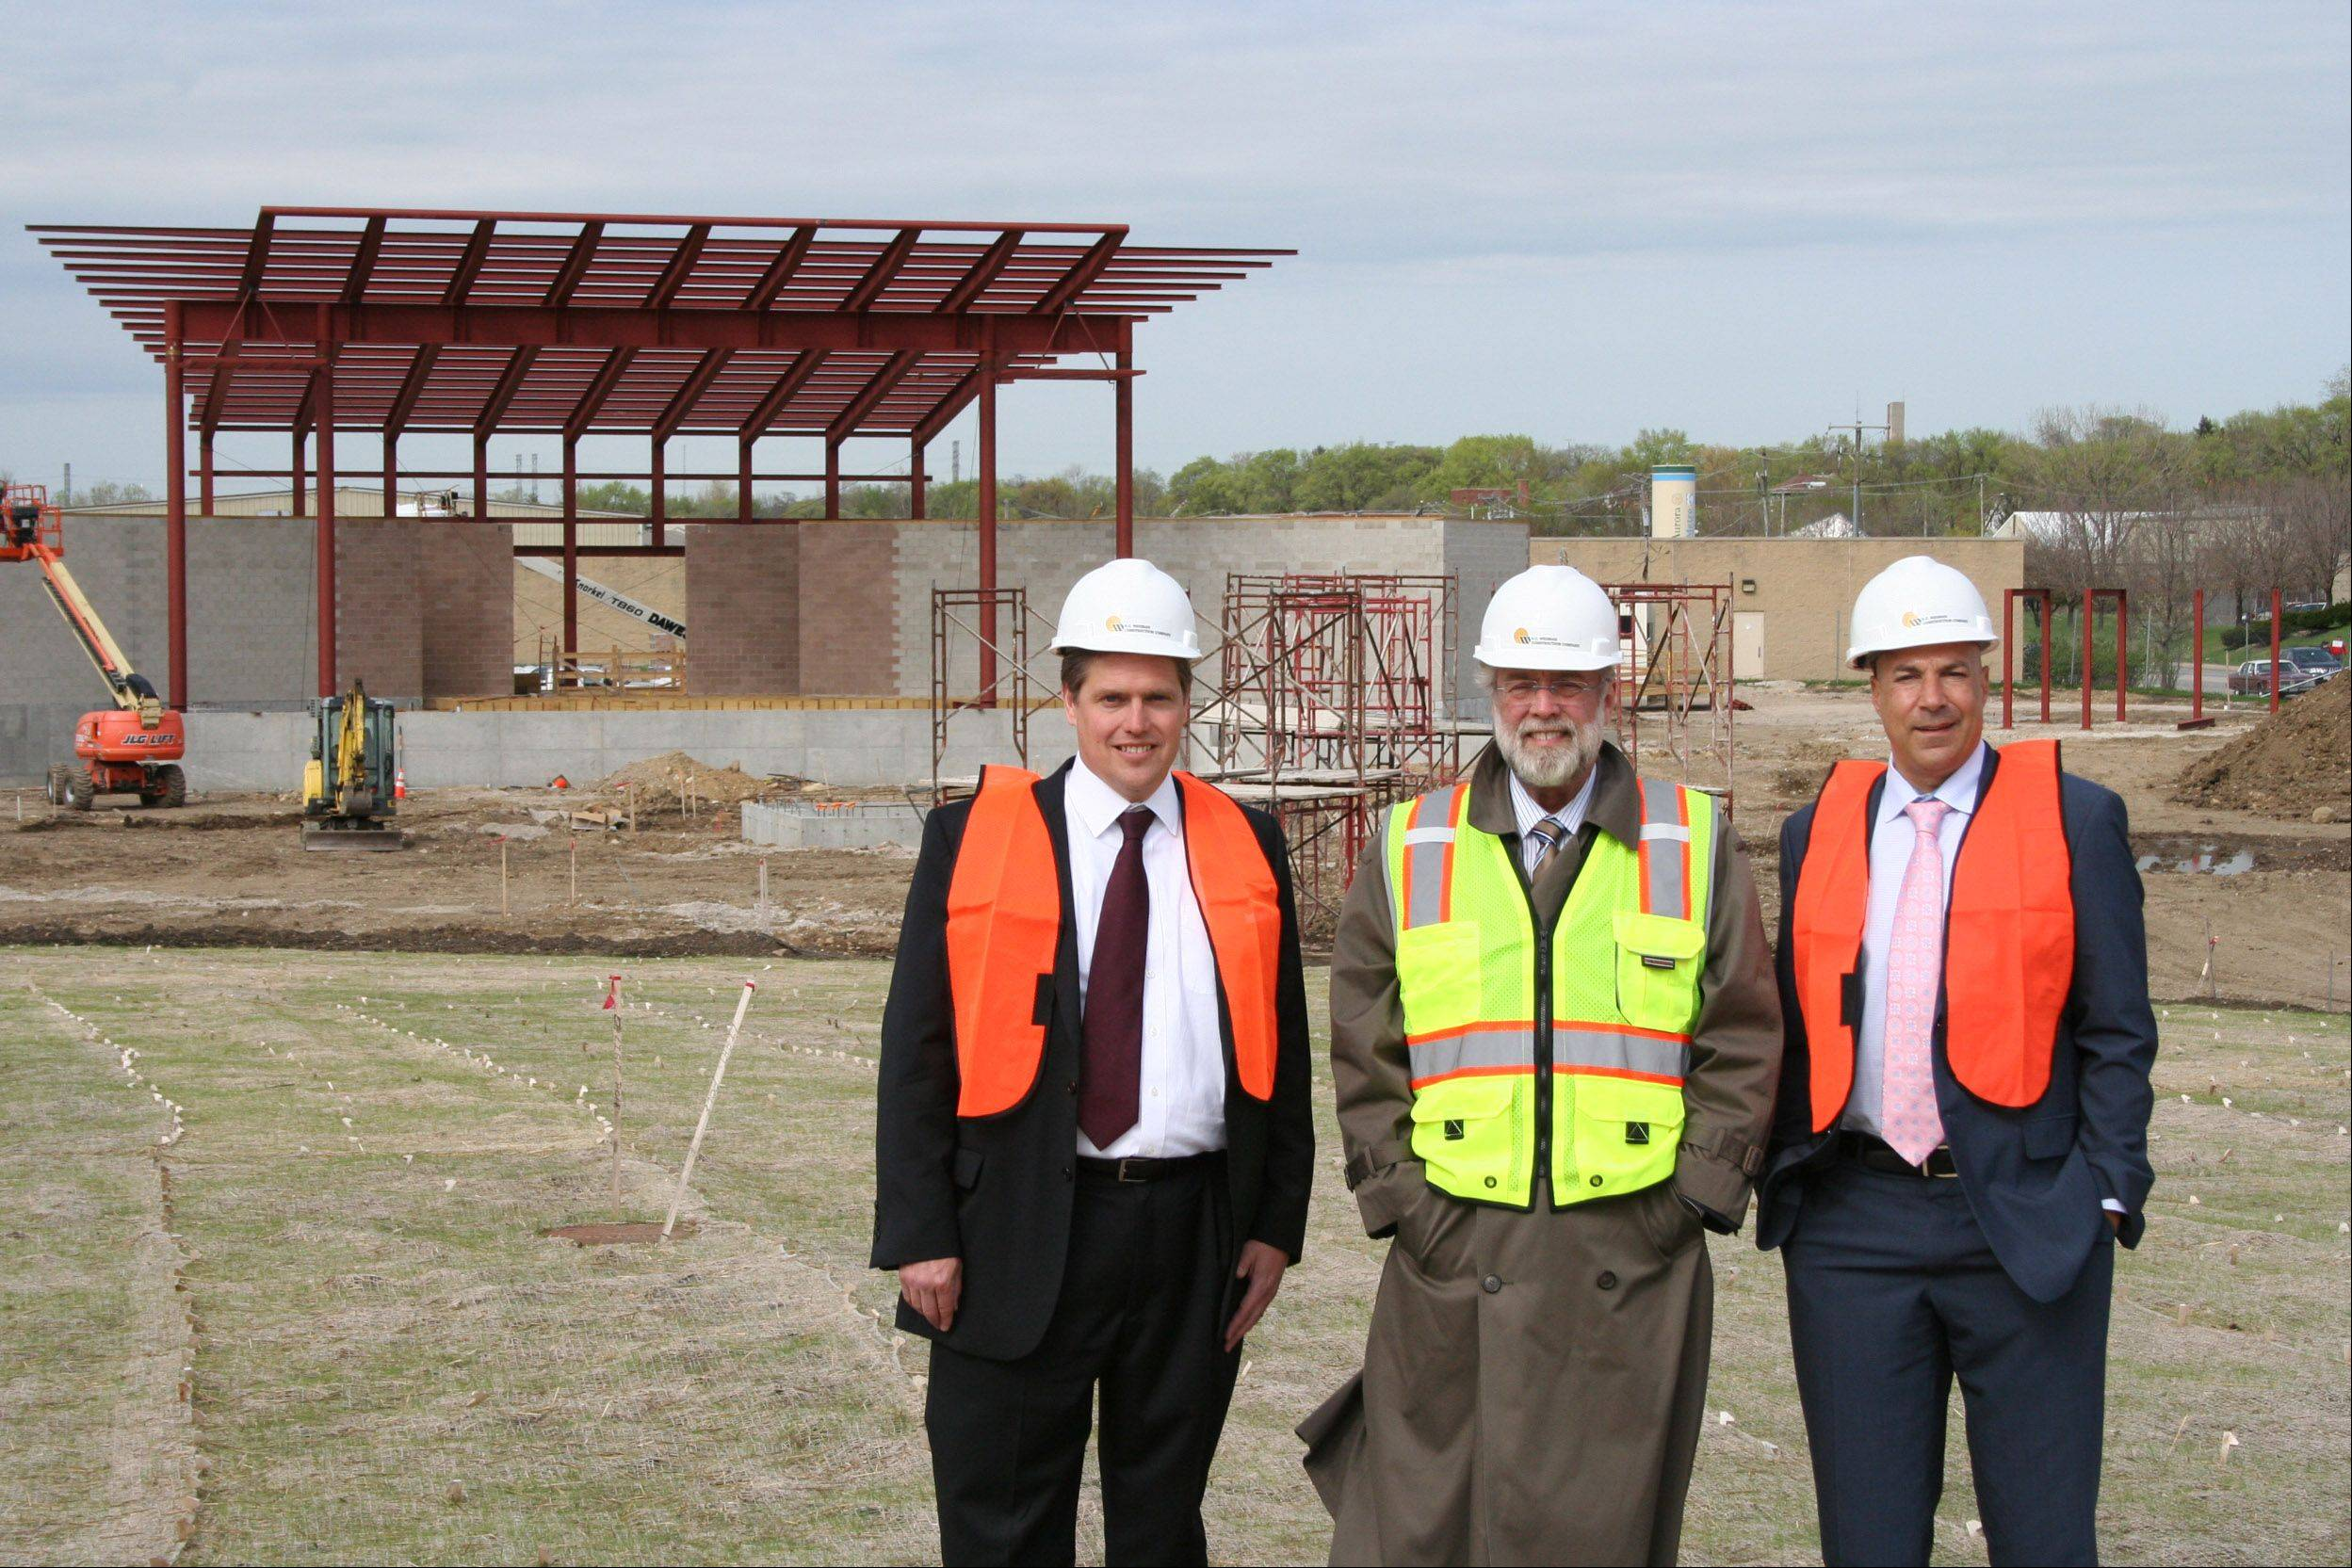 RiverEdge Park, where Aurora Mayor Tom Weisner stands with Dunham Fund board Chairman Stewart Beach, left, and Dunham Fund board member Michael Morcos, right, will be a gathering place for the community and an economic engine when it's completed, Weisner said Thursday during his State of the City address.